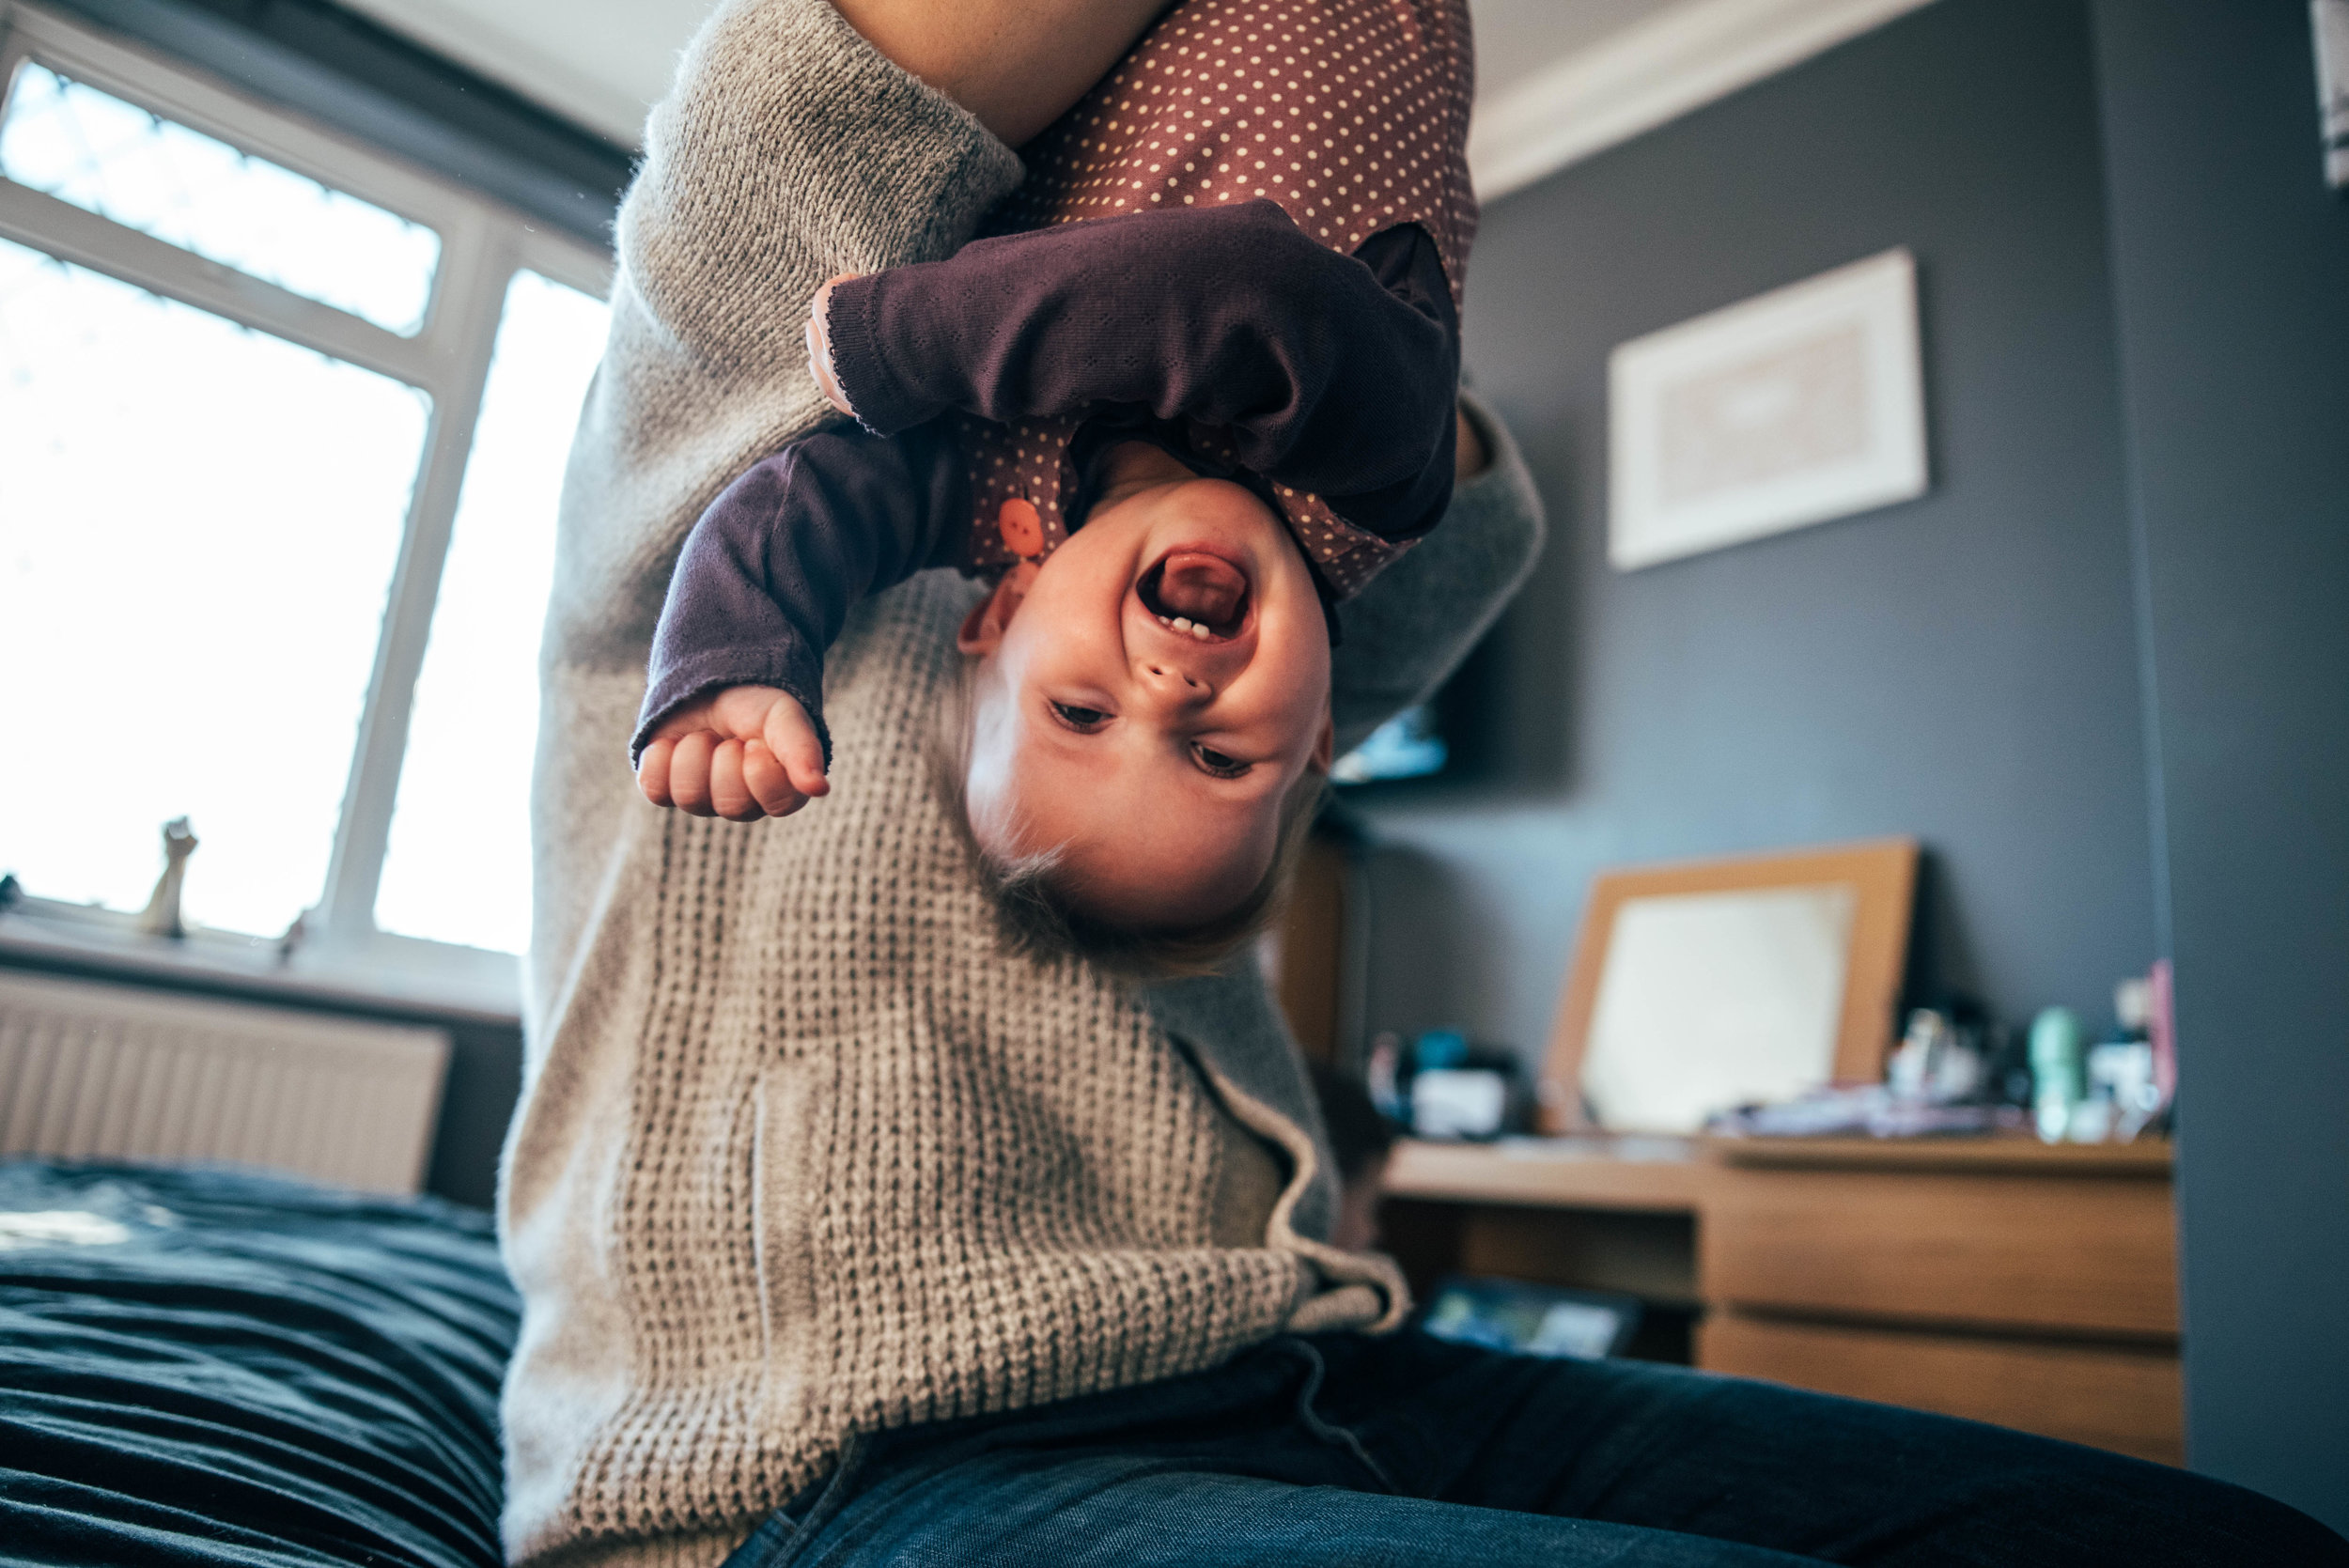 dad holds baby girl upside down essex documentary portrait photographer